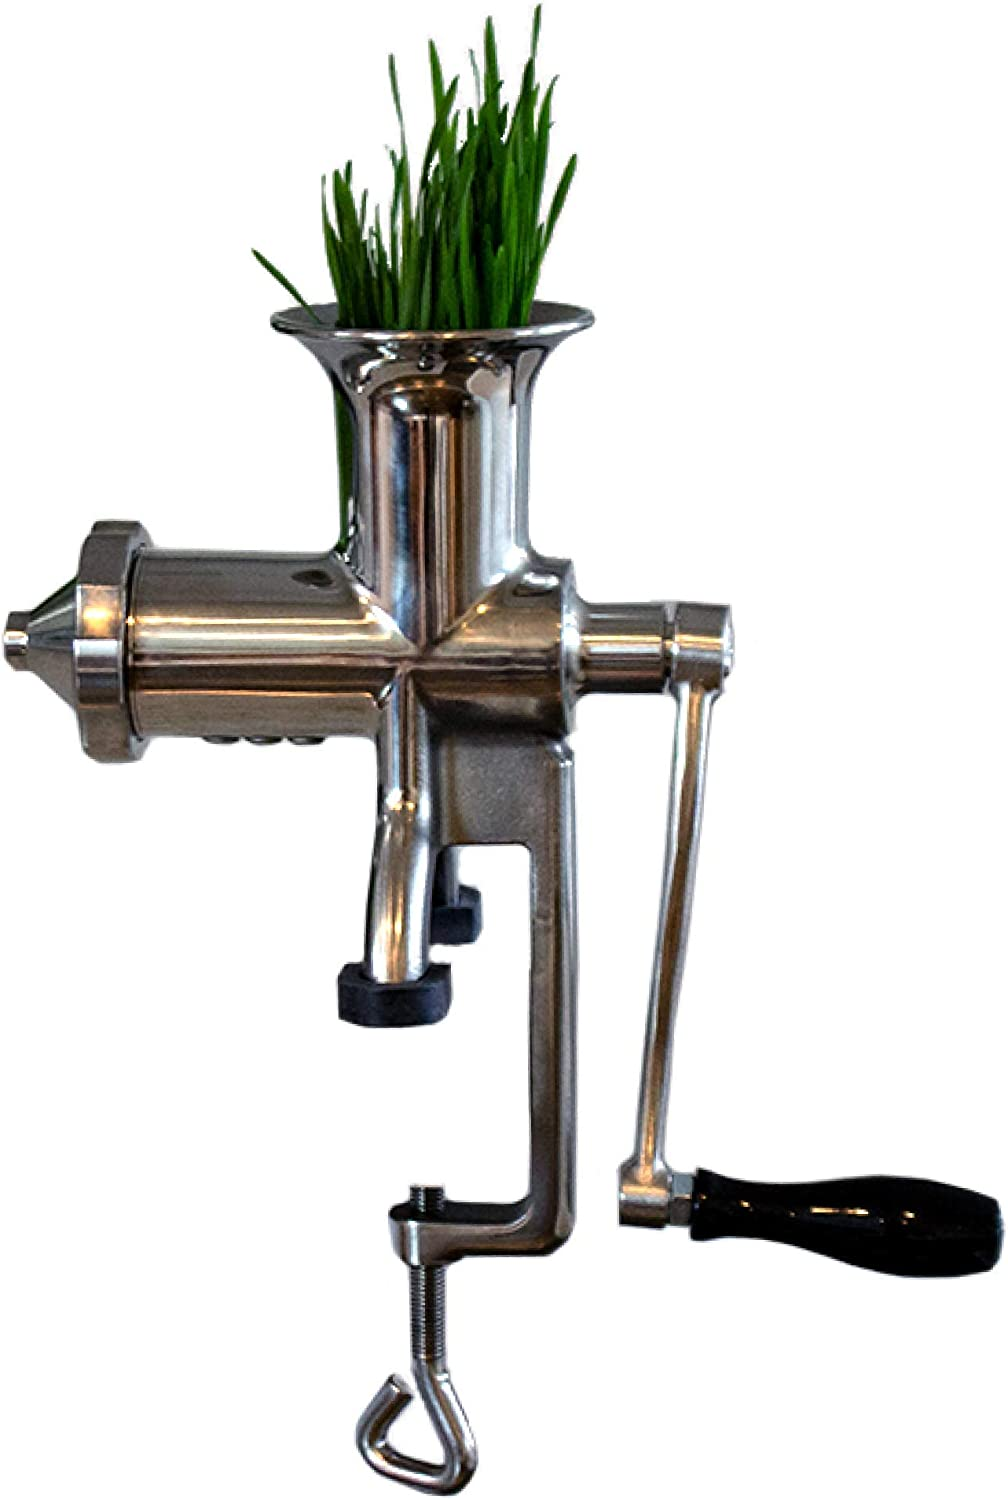 71oGlwyMPJL. AC SL1500 Best Hand Press Juicer 2021 Review